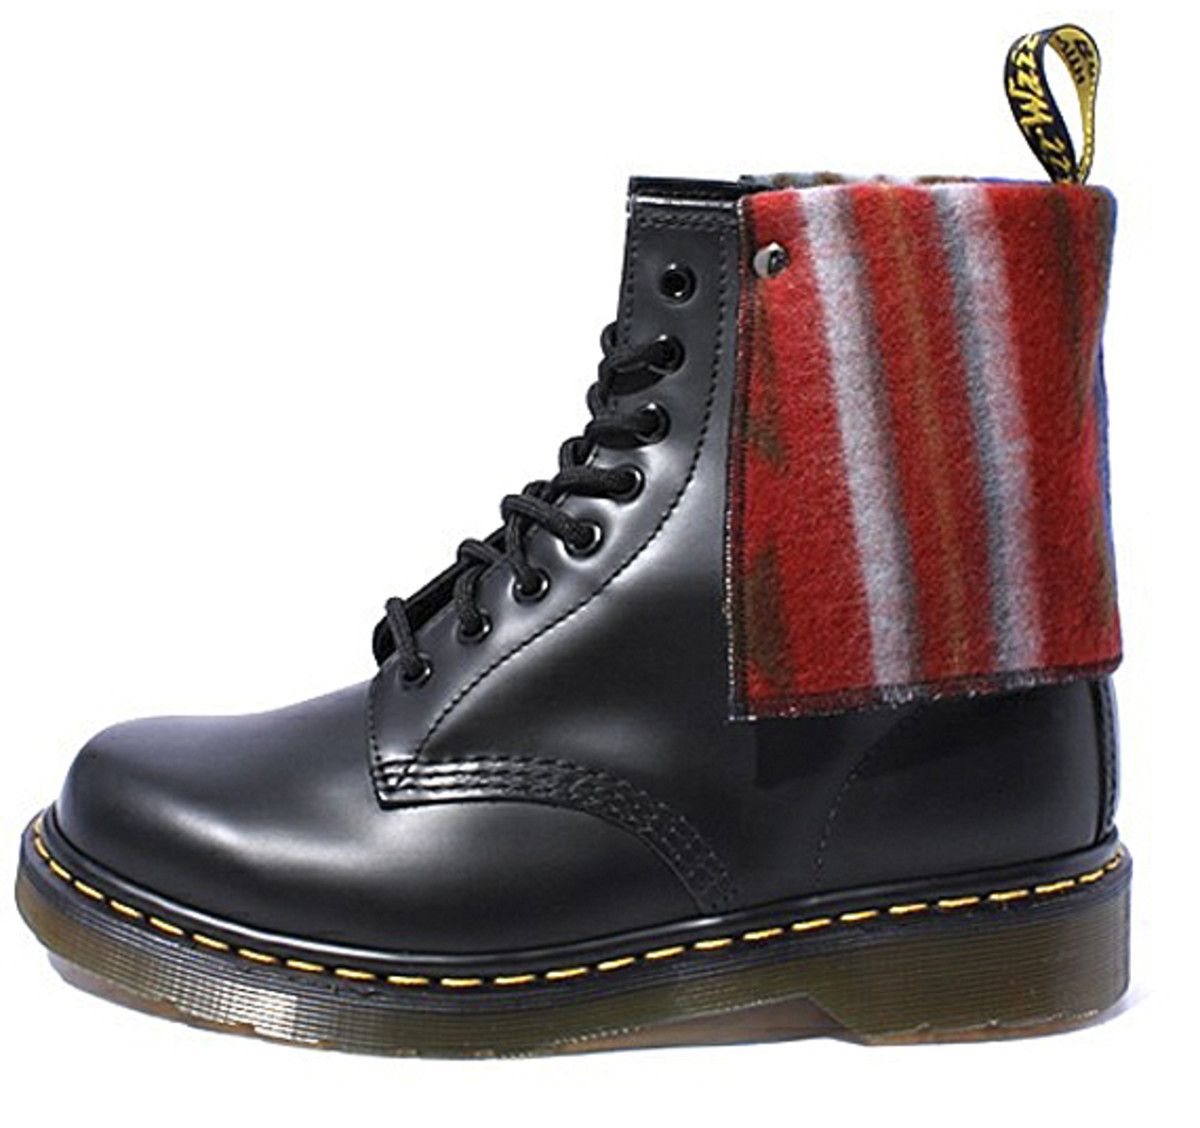 rehacer-dr-martens-1460-8-eyelet-boots-10